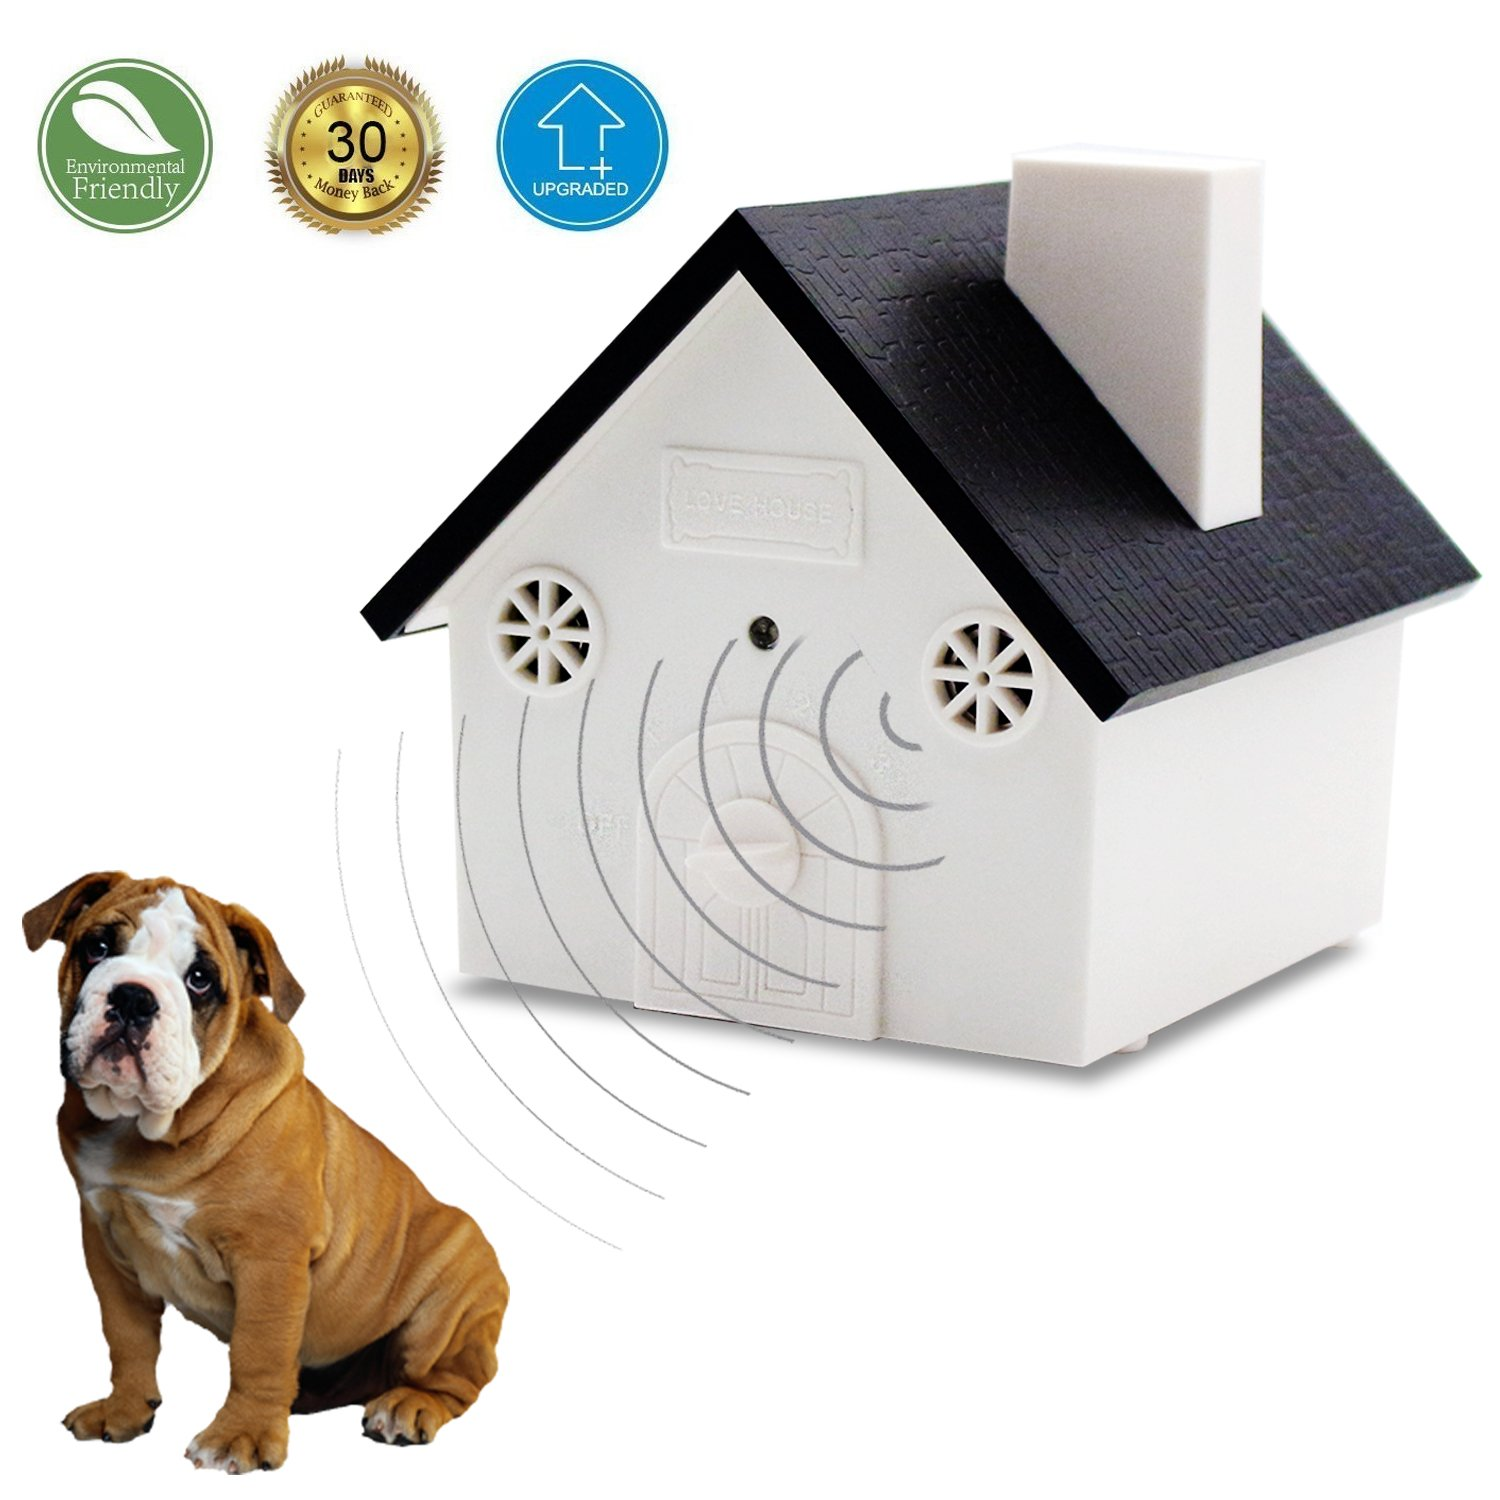 Ultrasonic Outdoor Anti-Bark Controller Sonic Bark Deterrent, No Harm To Dog or other Pets, Plant, Human, Easy Hanging/Mounting On Tree, Wall, Or Fence Post.